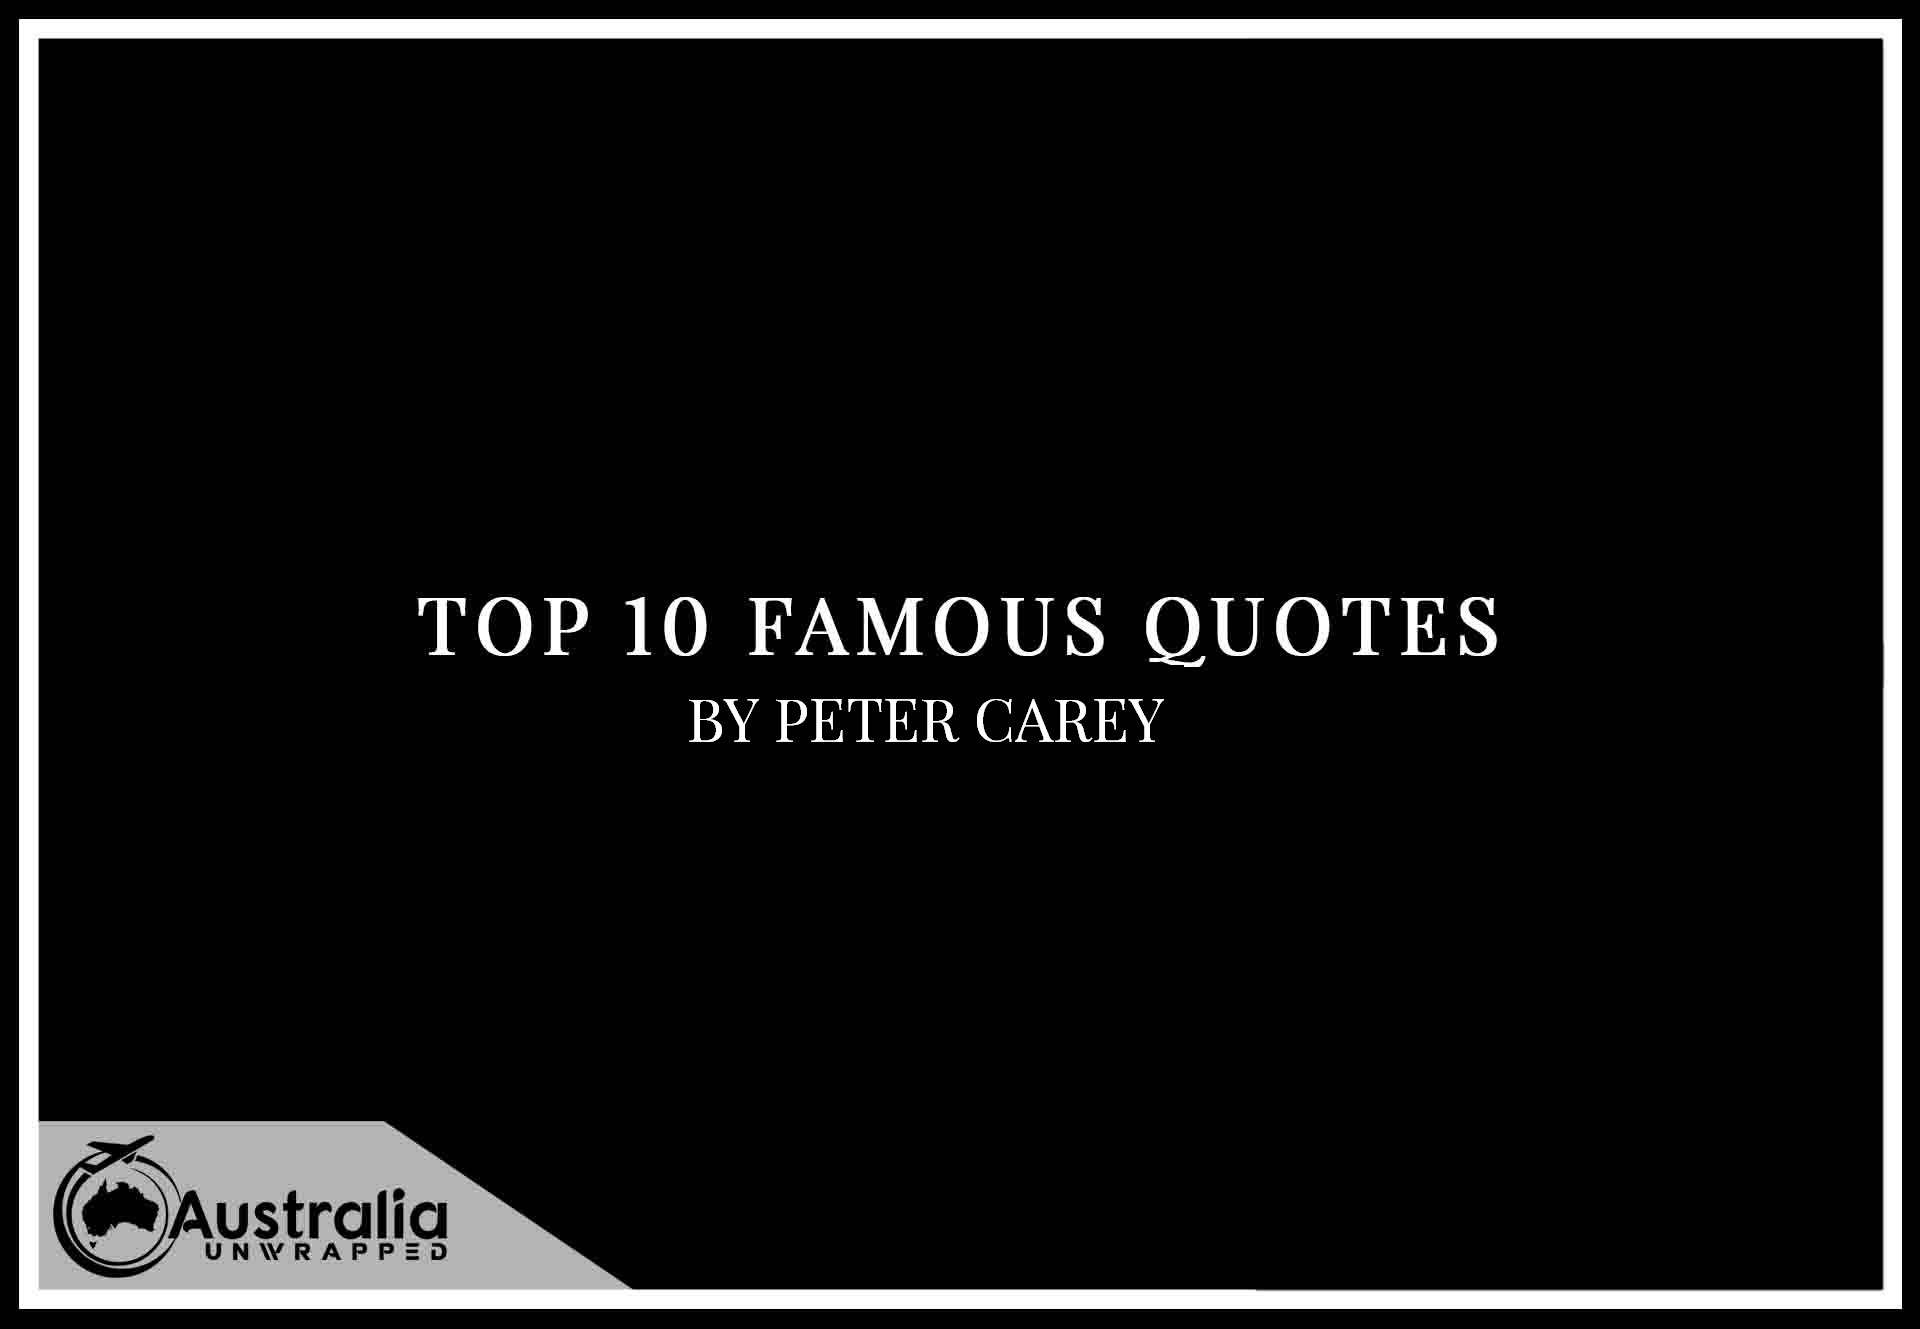 Top 10 Famous Quotes by Author Peter Carey